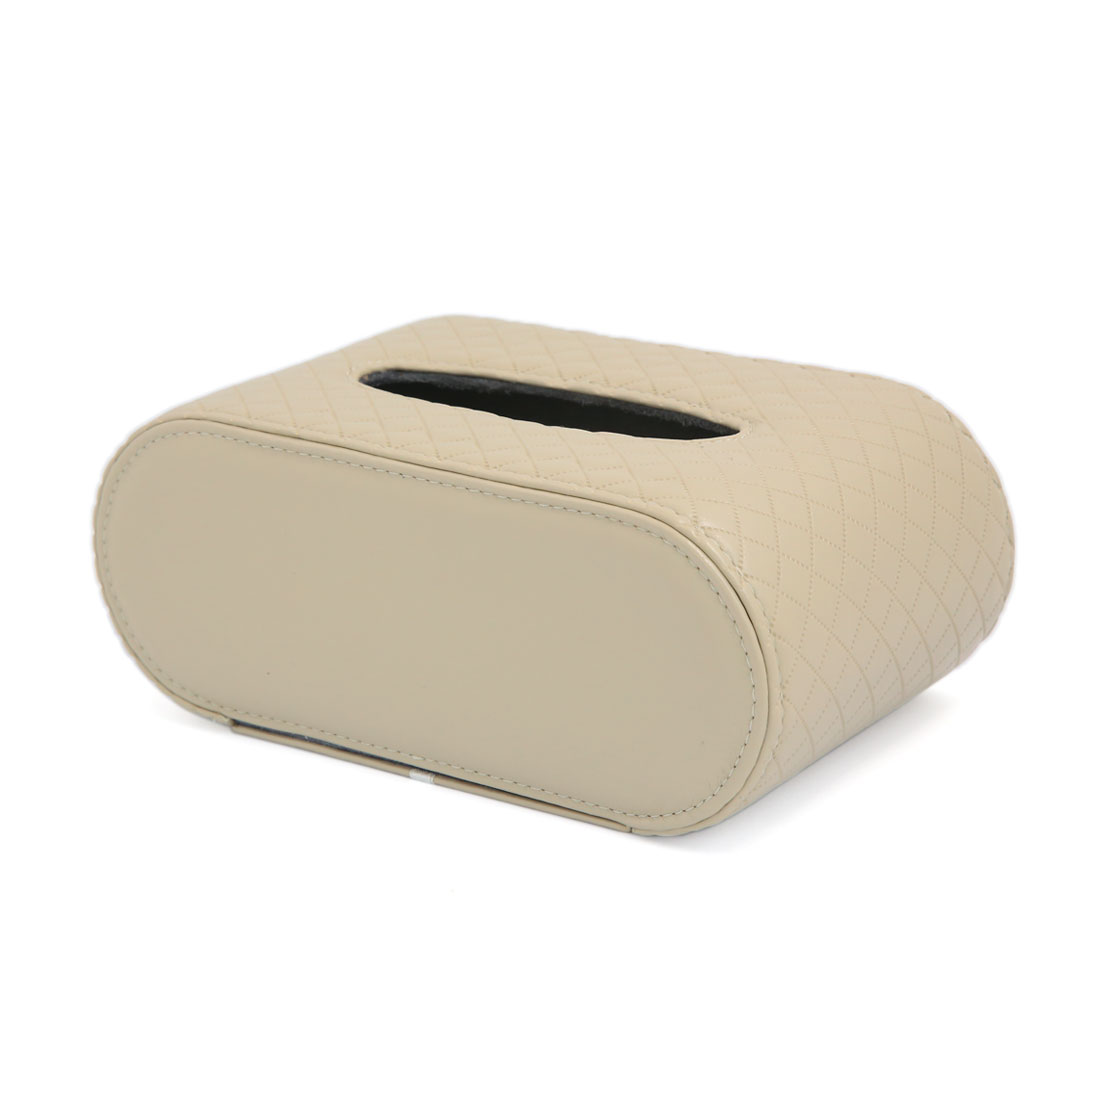 Beige Faux Leather Rectangular Paper Cover Case Tissue Box Napkin Holder Car Home Decor